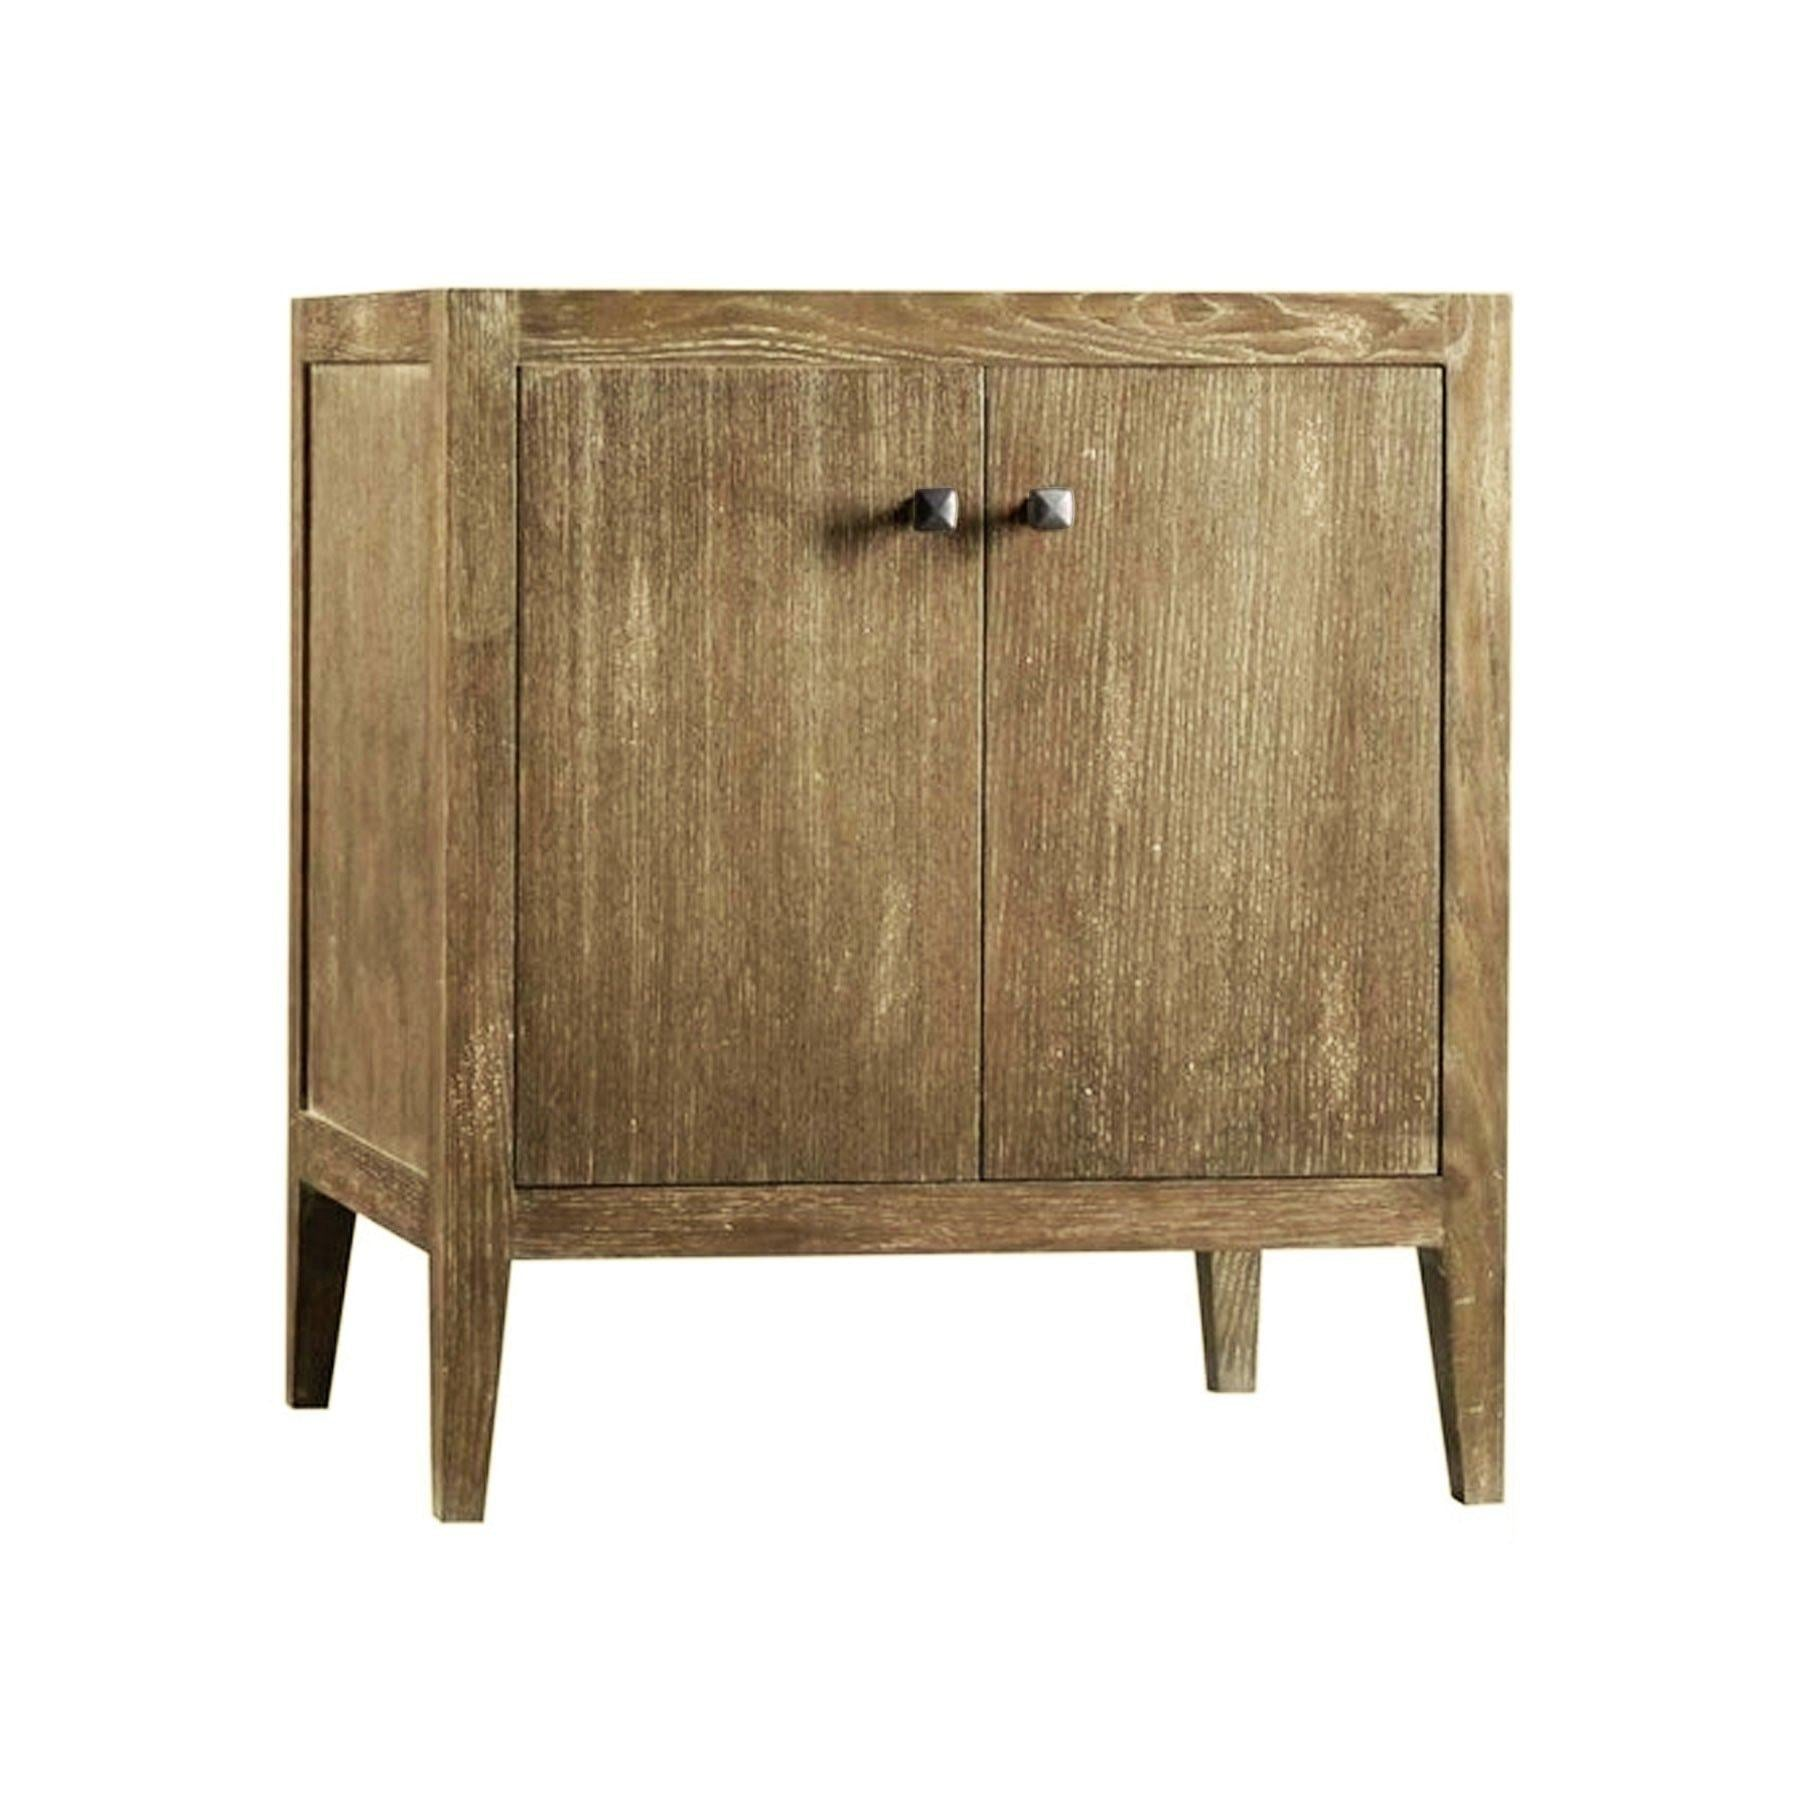 Shop for maykke 30 glenn single bathroom vanity base cabinet only contemporary grey brown hardwood construction tapered legs premium metal knobs weathered natural ysa1900202